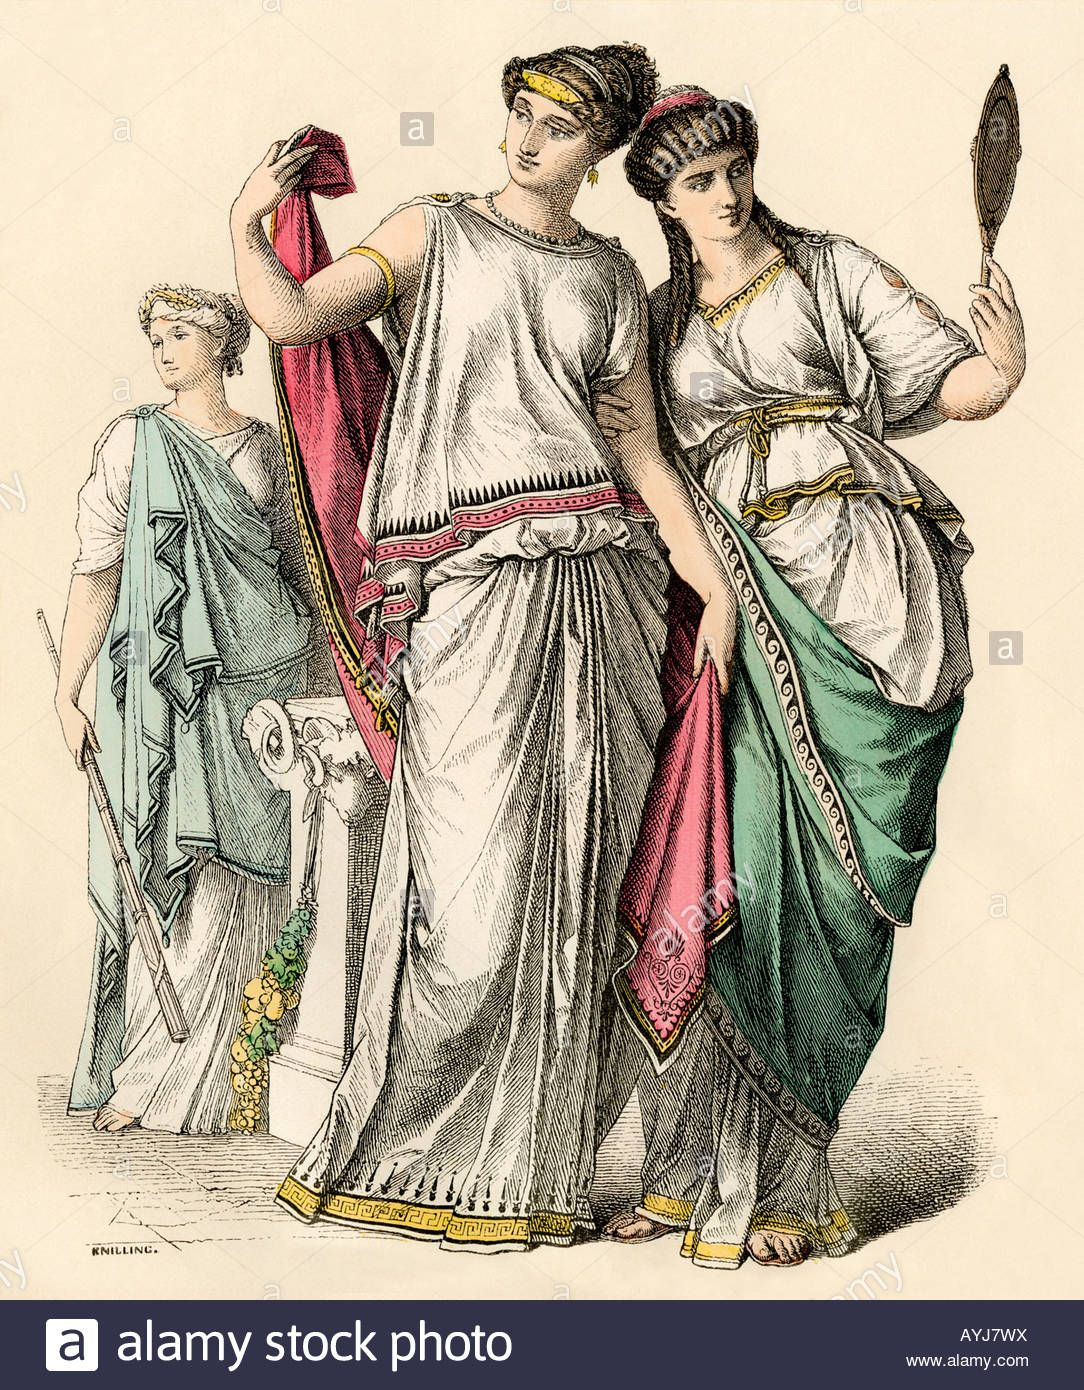 42a648bb978 Ancient Greek women and a priestess - Stock Image | xanadu in 2019 ...